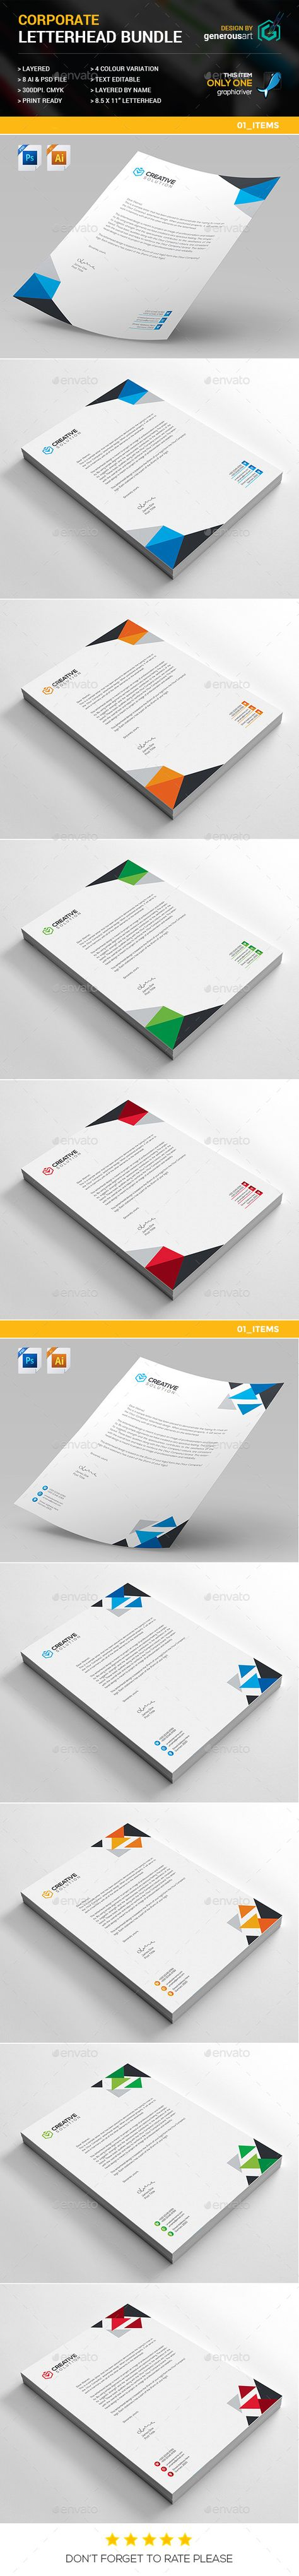 Letterhead bundle print stationery and template spiritdancerdesigns Image collections